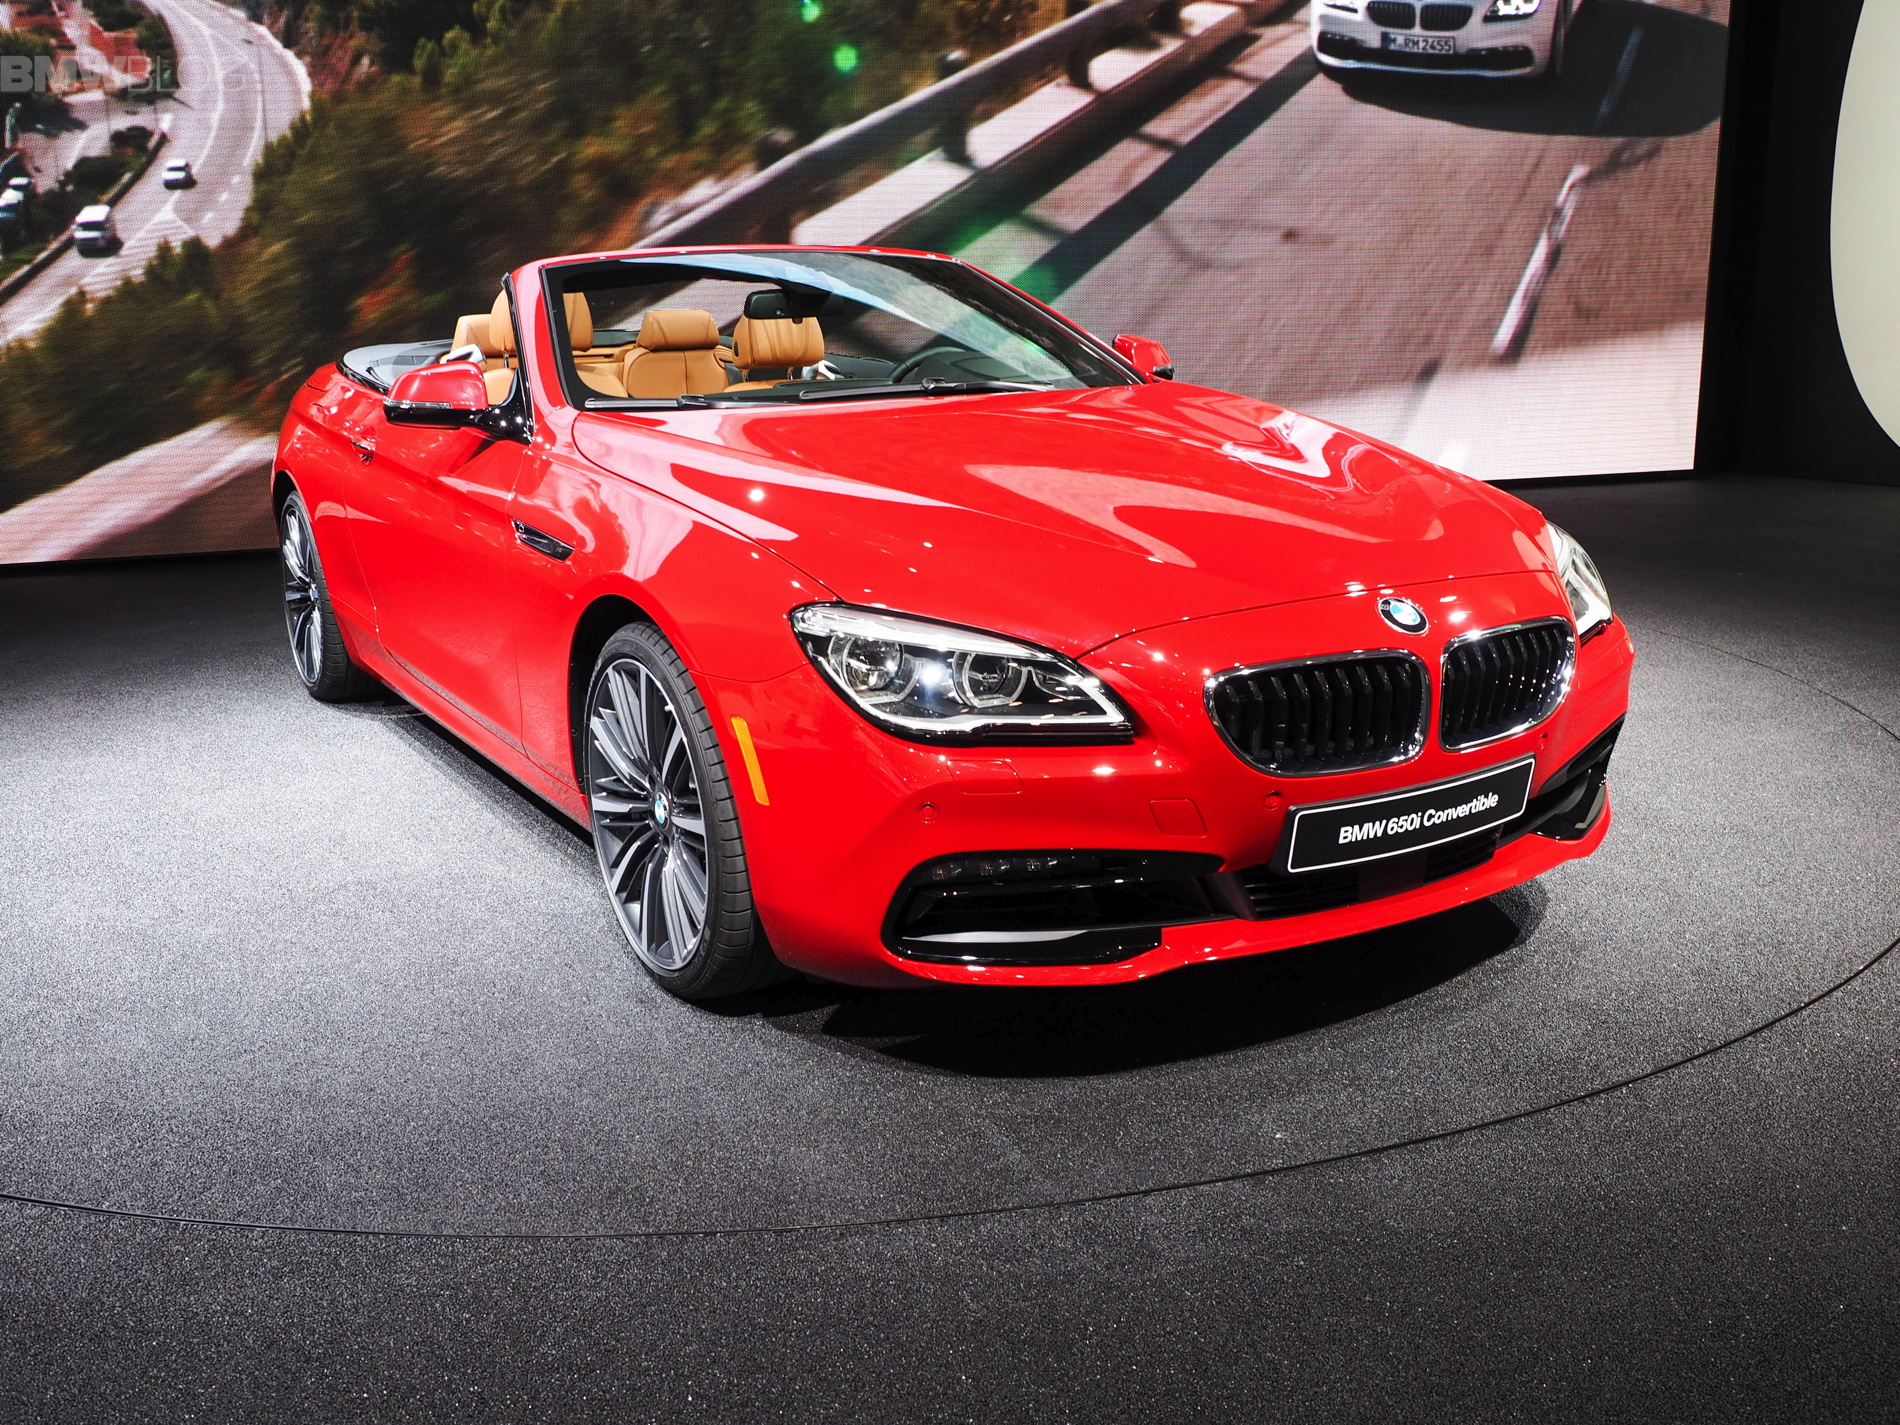 2015 bmw 6 series convertible facelift 02